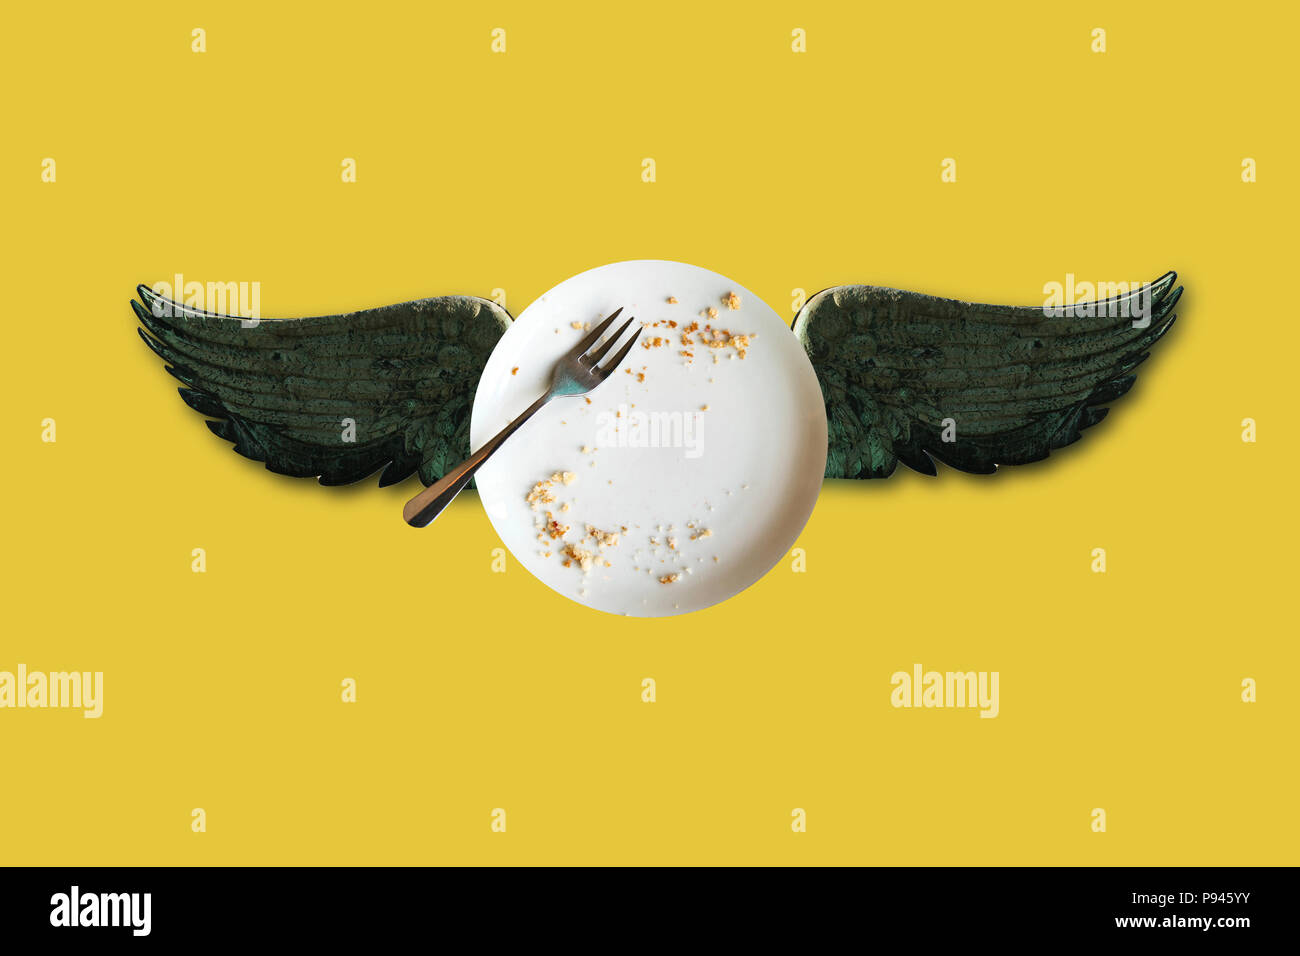 Minimal conceptual illustration of an empty plate with crumbs and wings on a colored background. - Stock Image